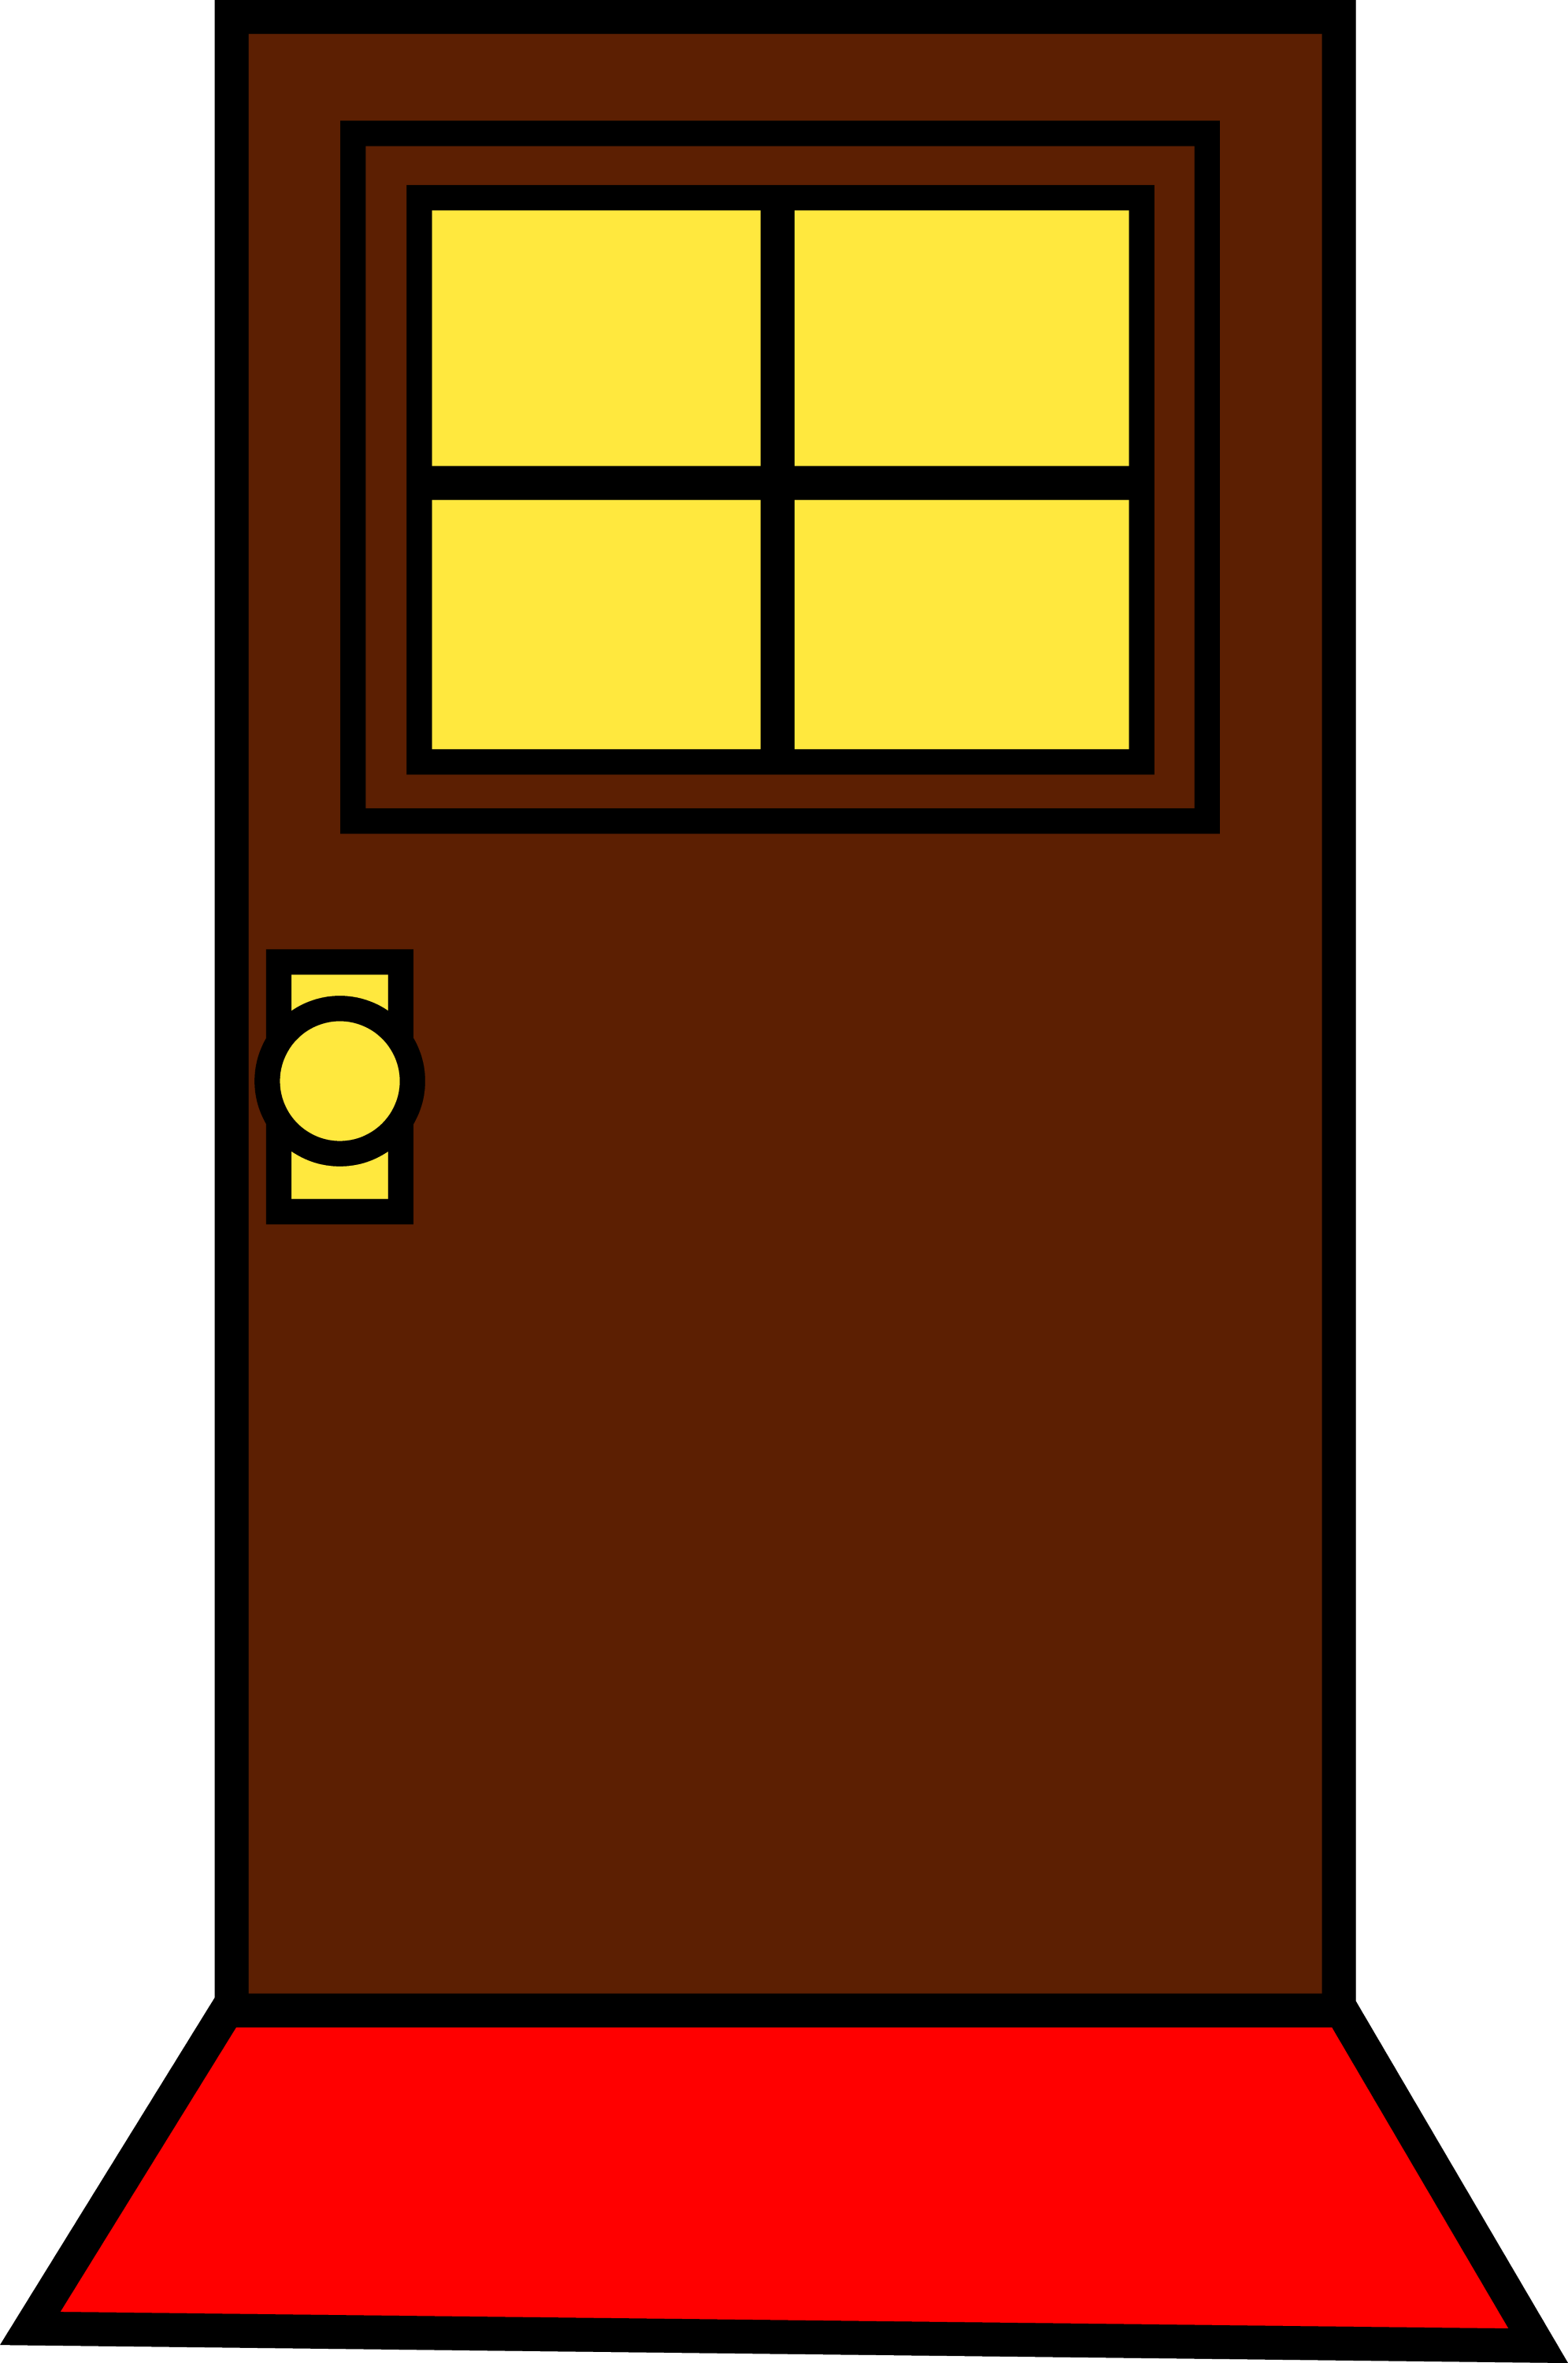 Simple brown door design free clip art for Window design clipart